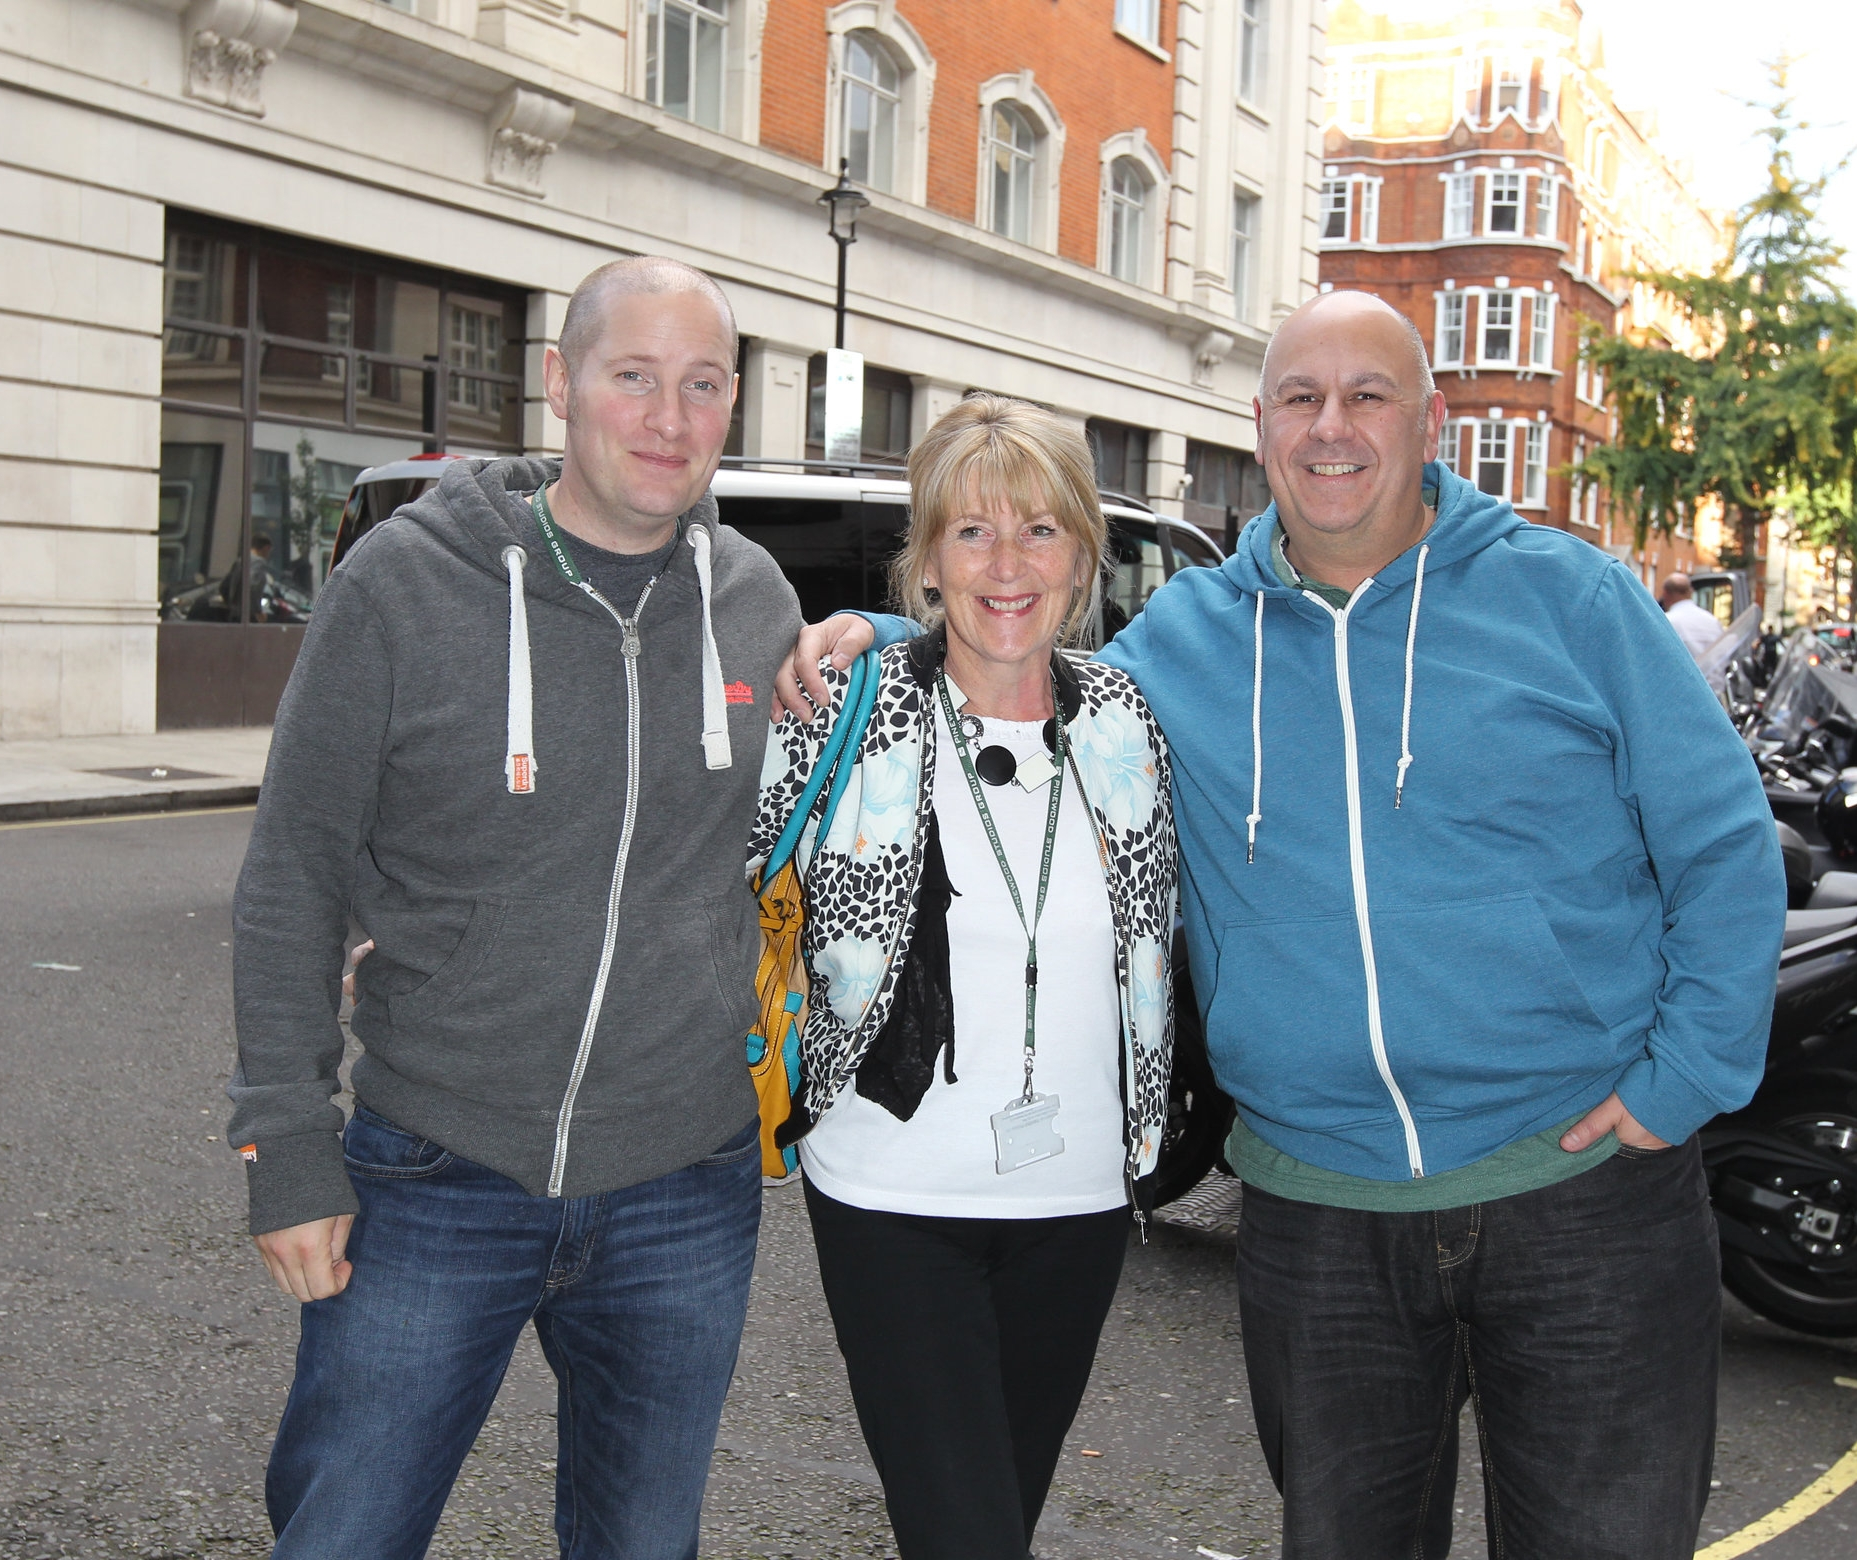 Nancy with her fellow Bake Off finalists Luis Troyano and Richard Burr